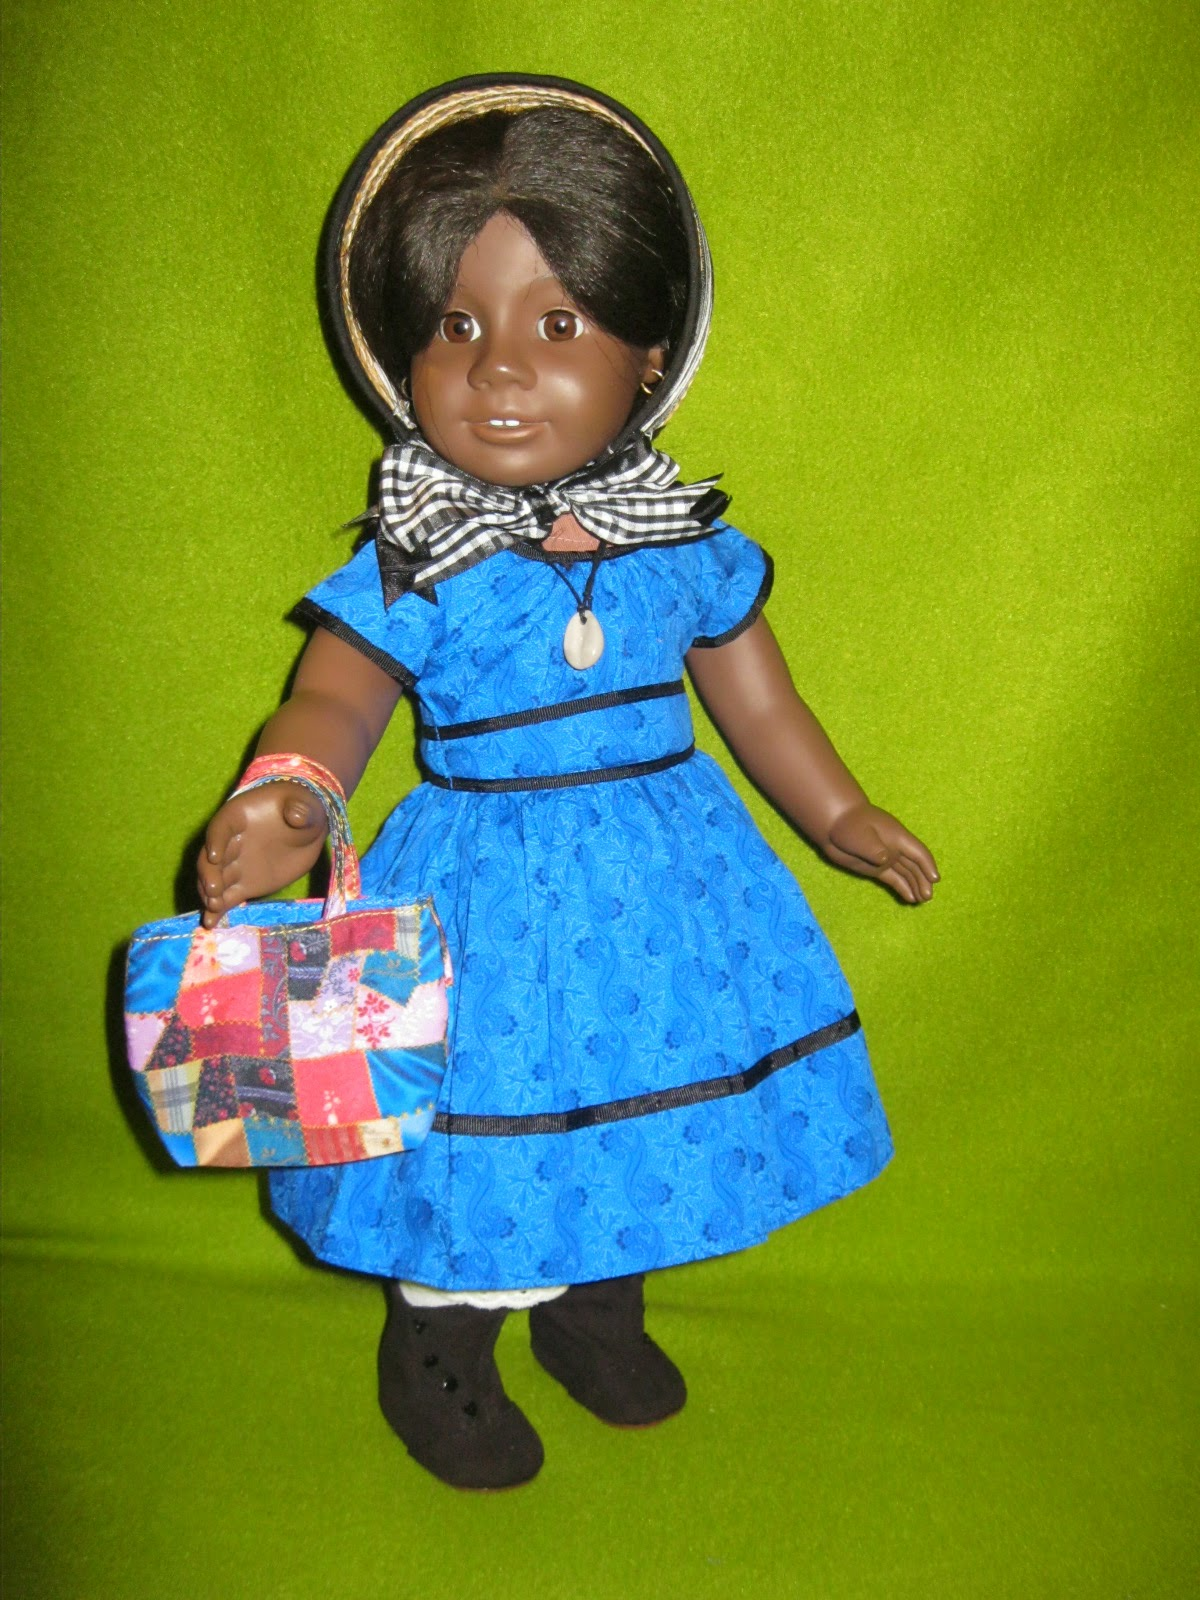 New American Girl Doll FELICITY Replacement Cream Hair Ribbon from Meet Outfit I